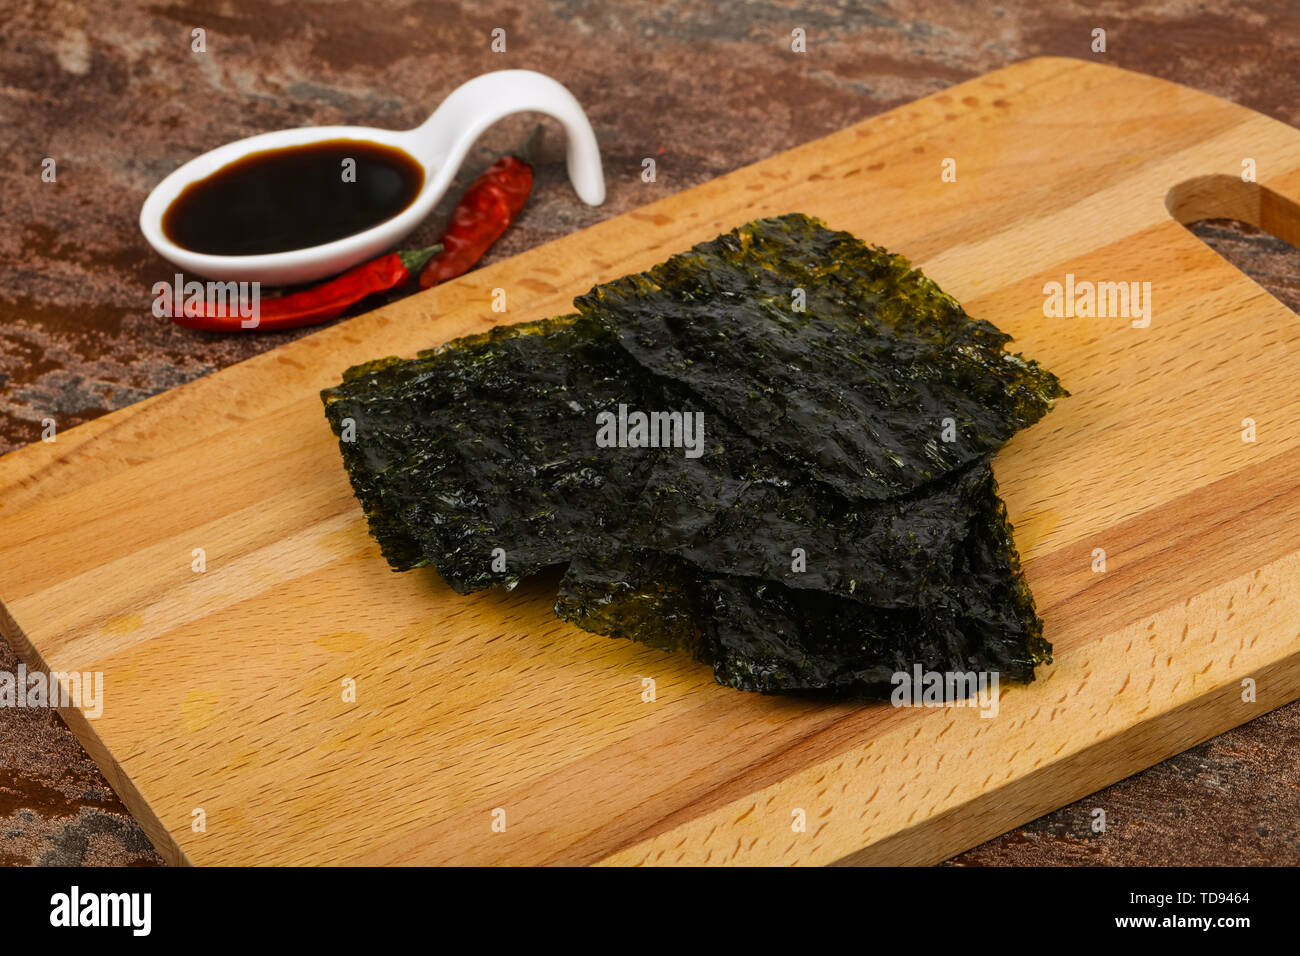 Tasty Nori chips with soya sauce - Stock Image